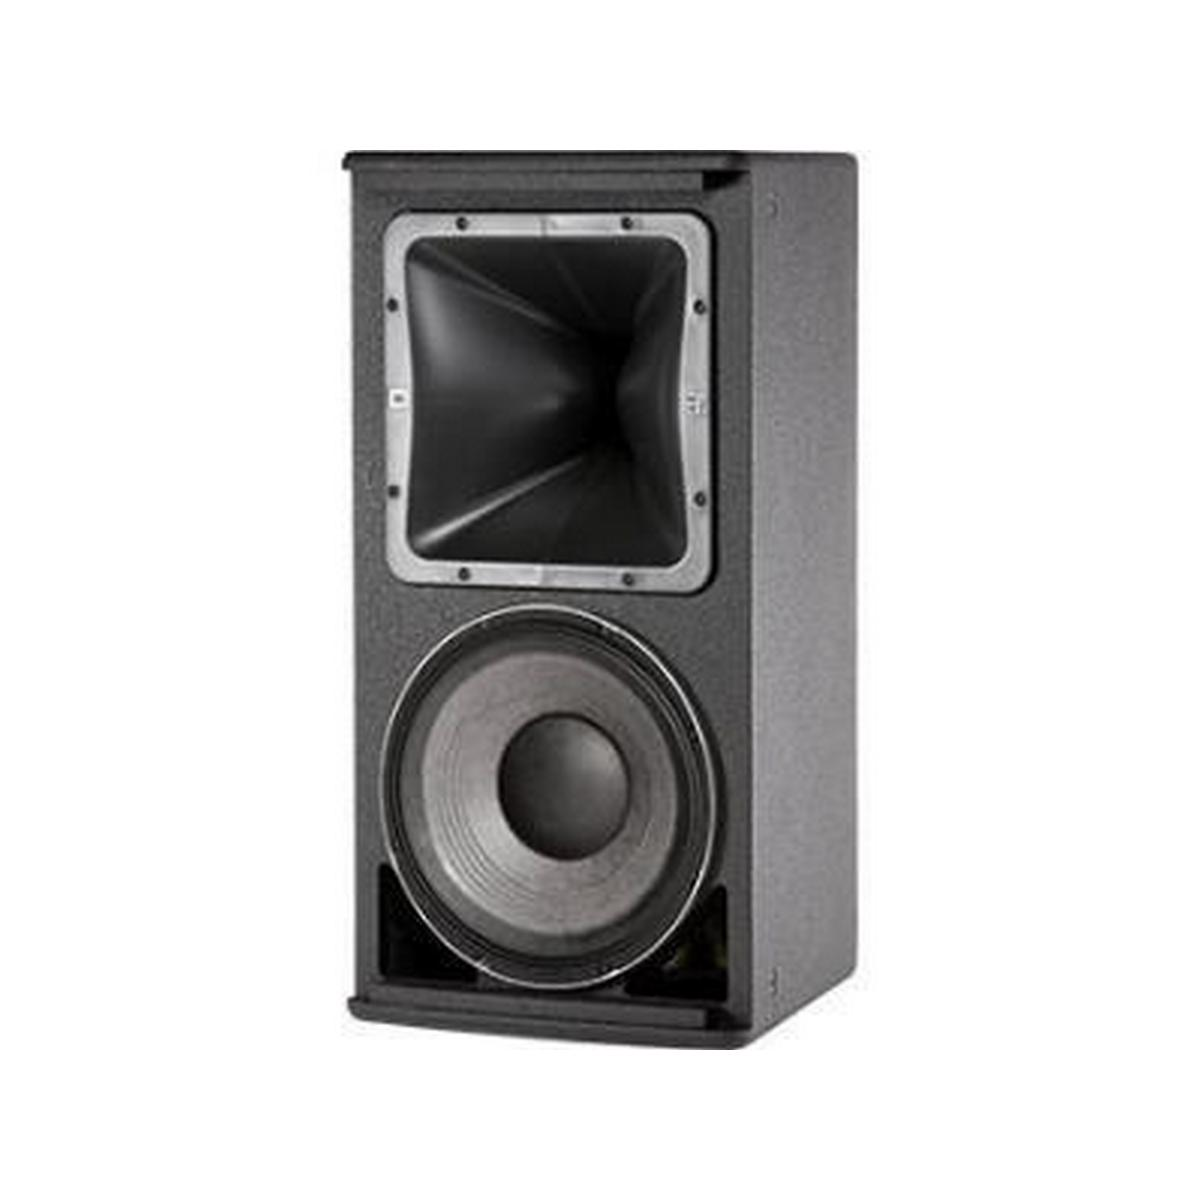 JBL AM721295 Two-way full range loudspeaker